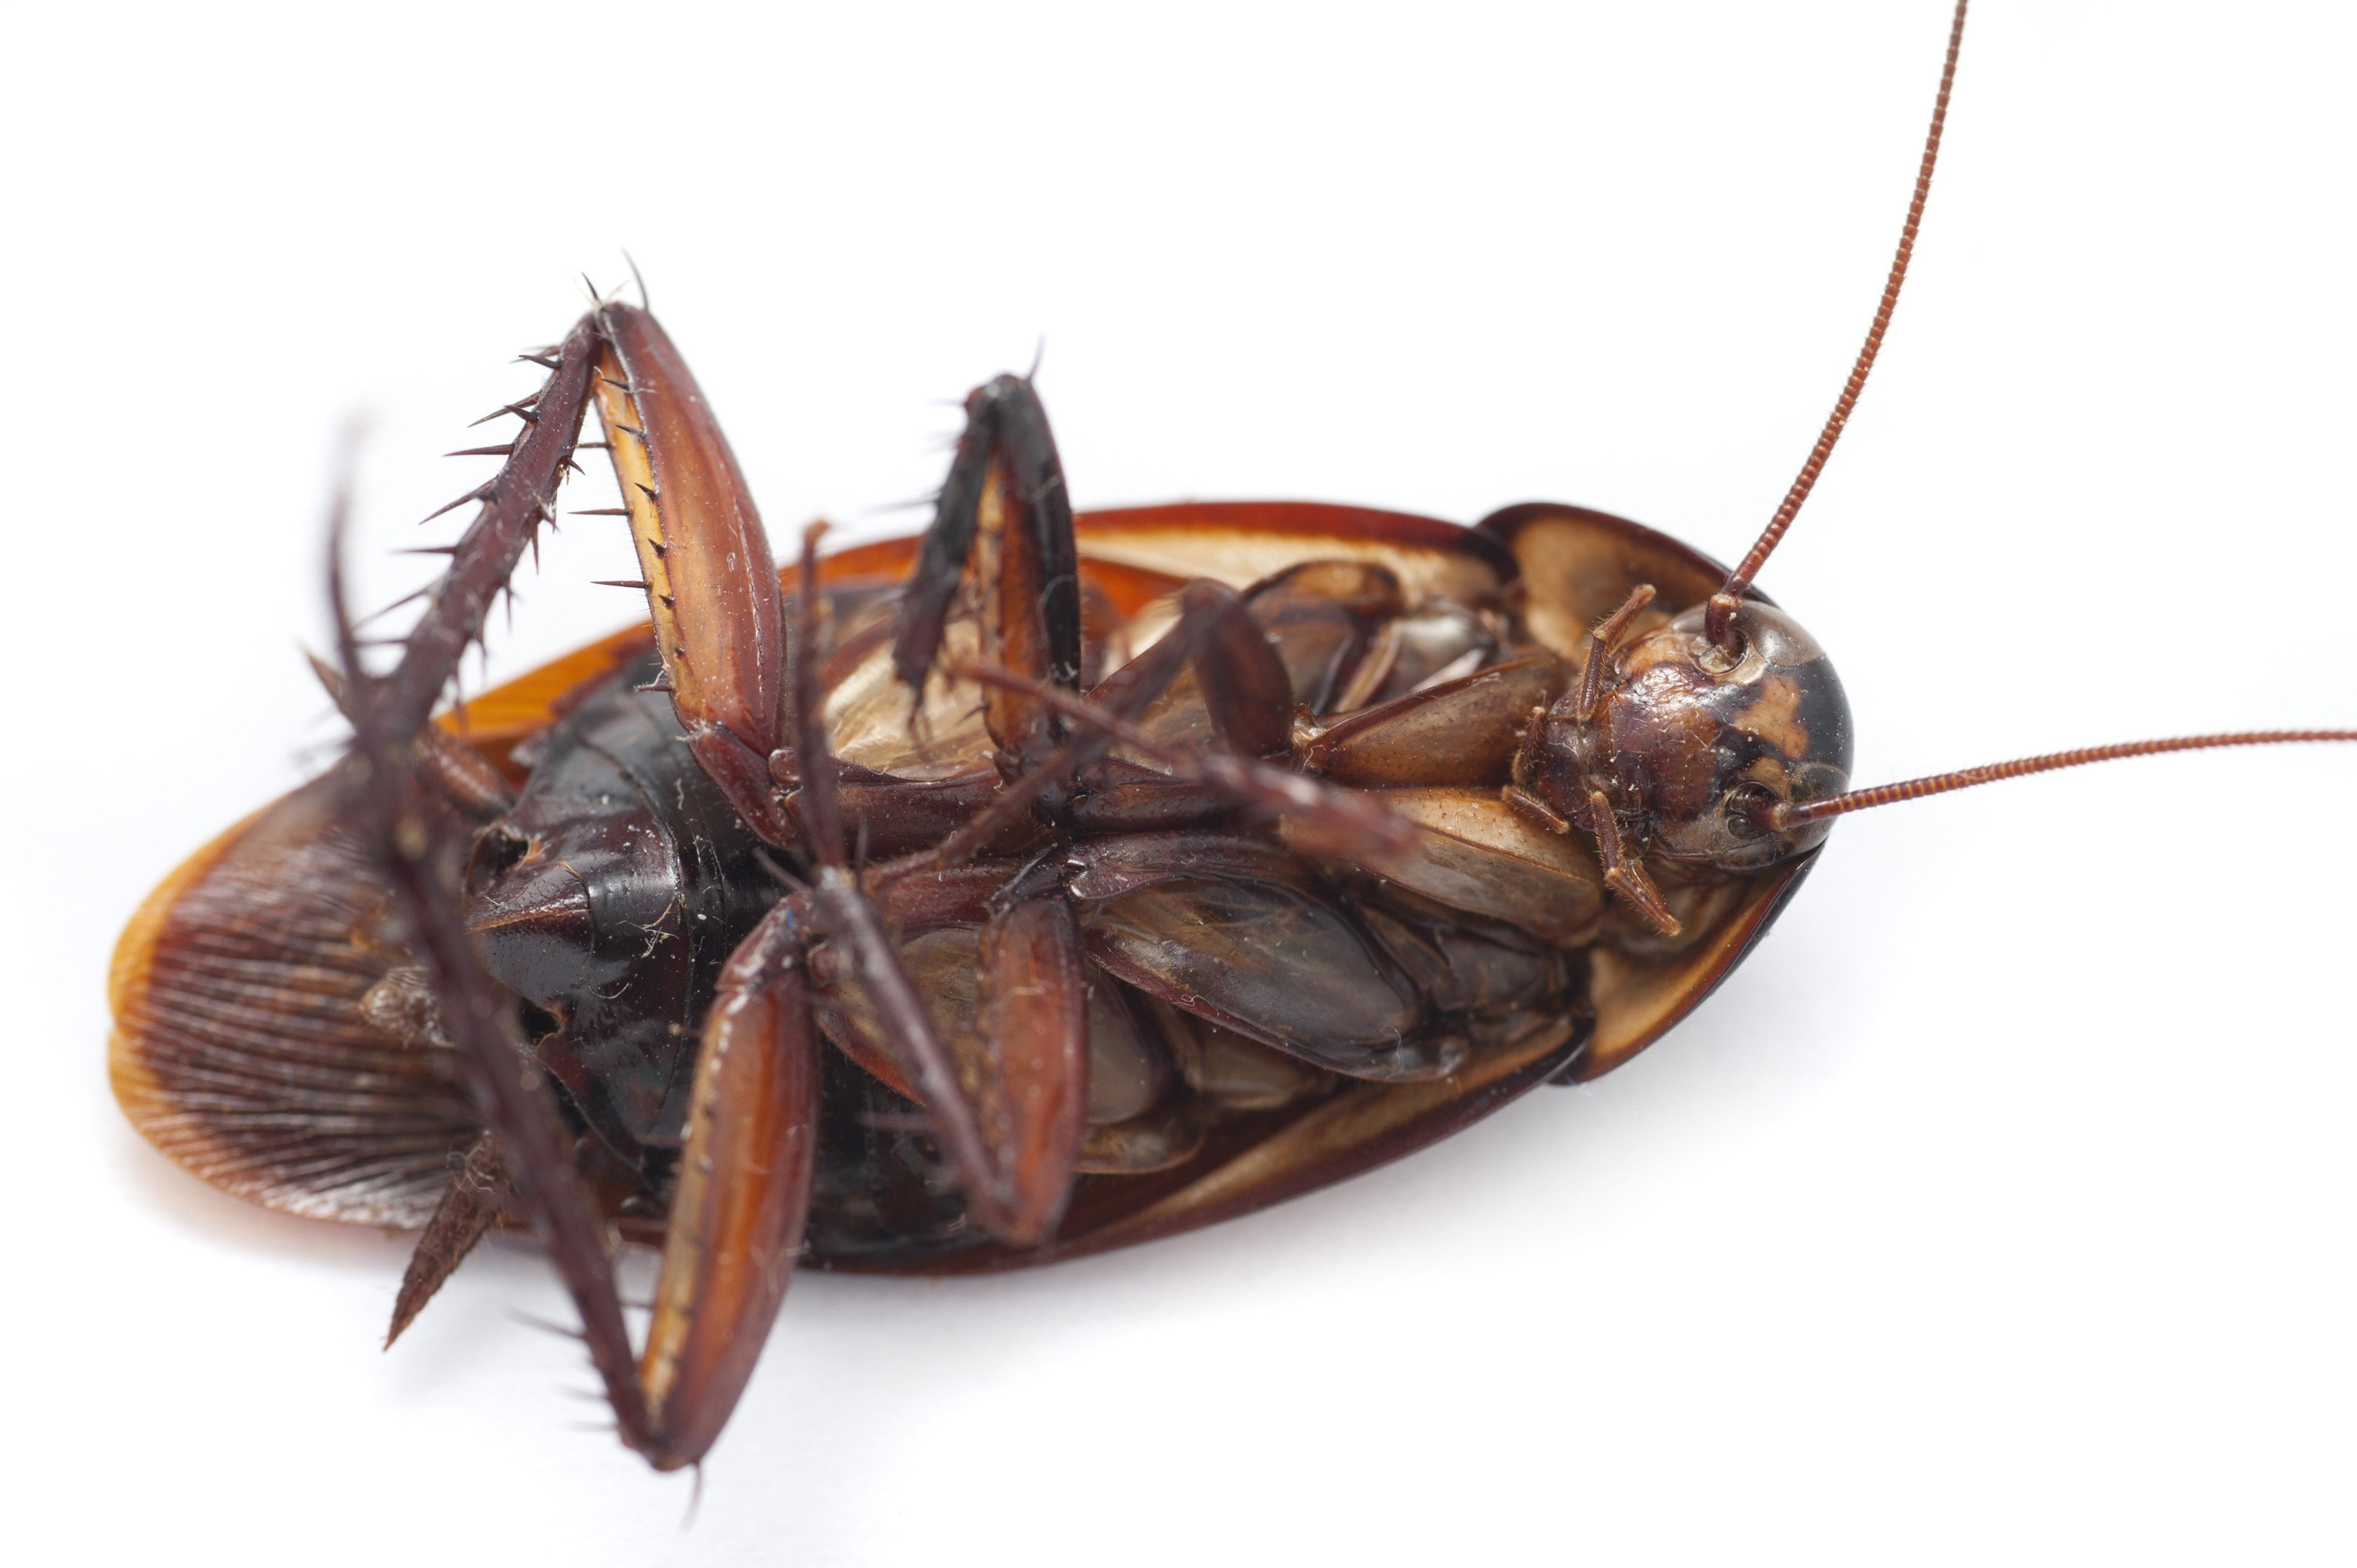 Cockroach images